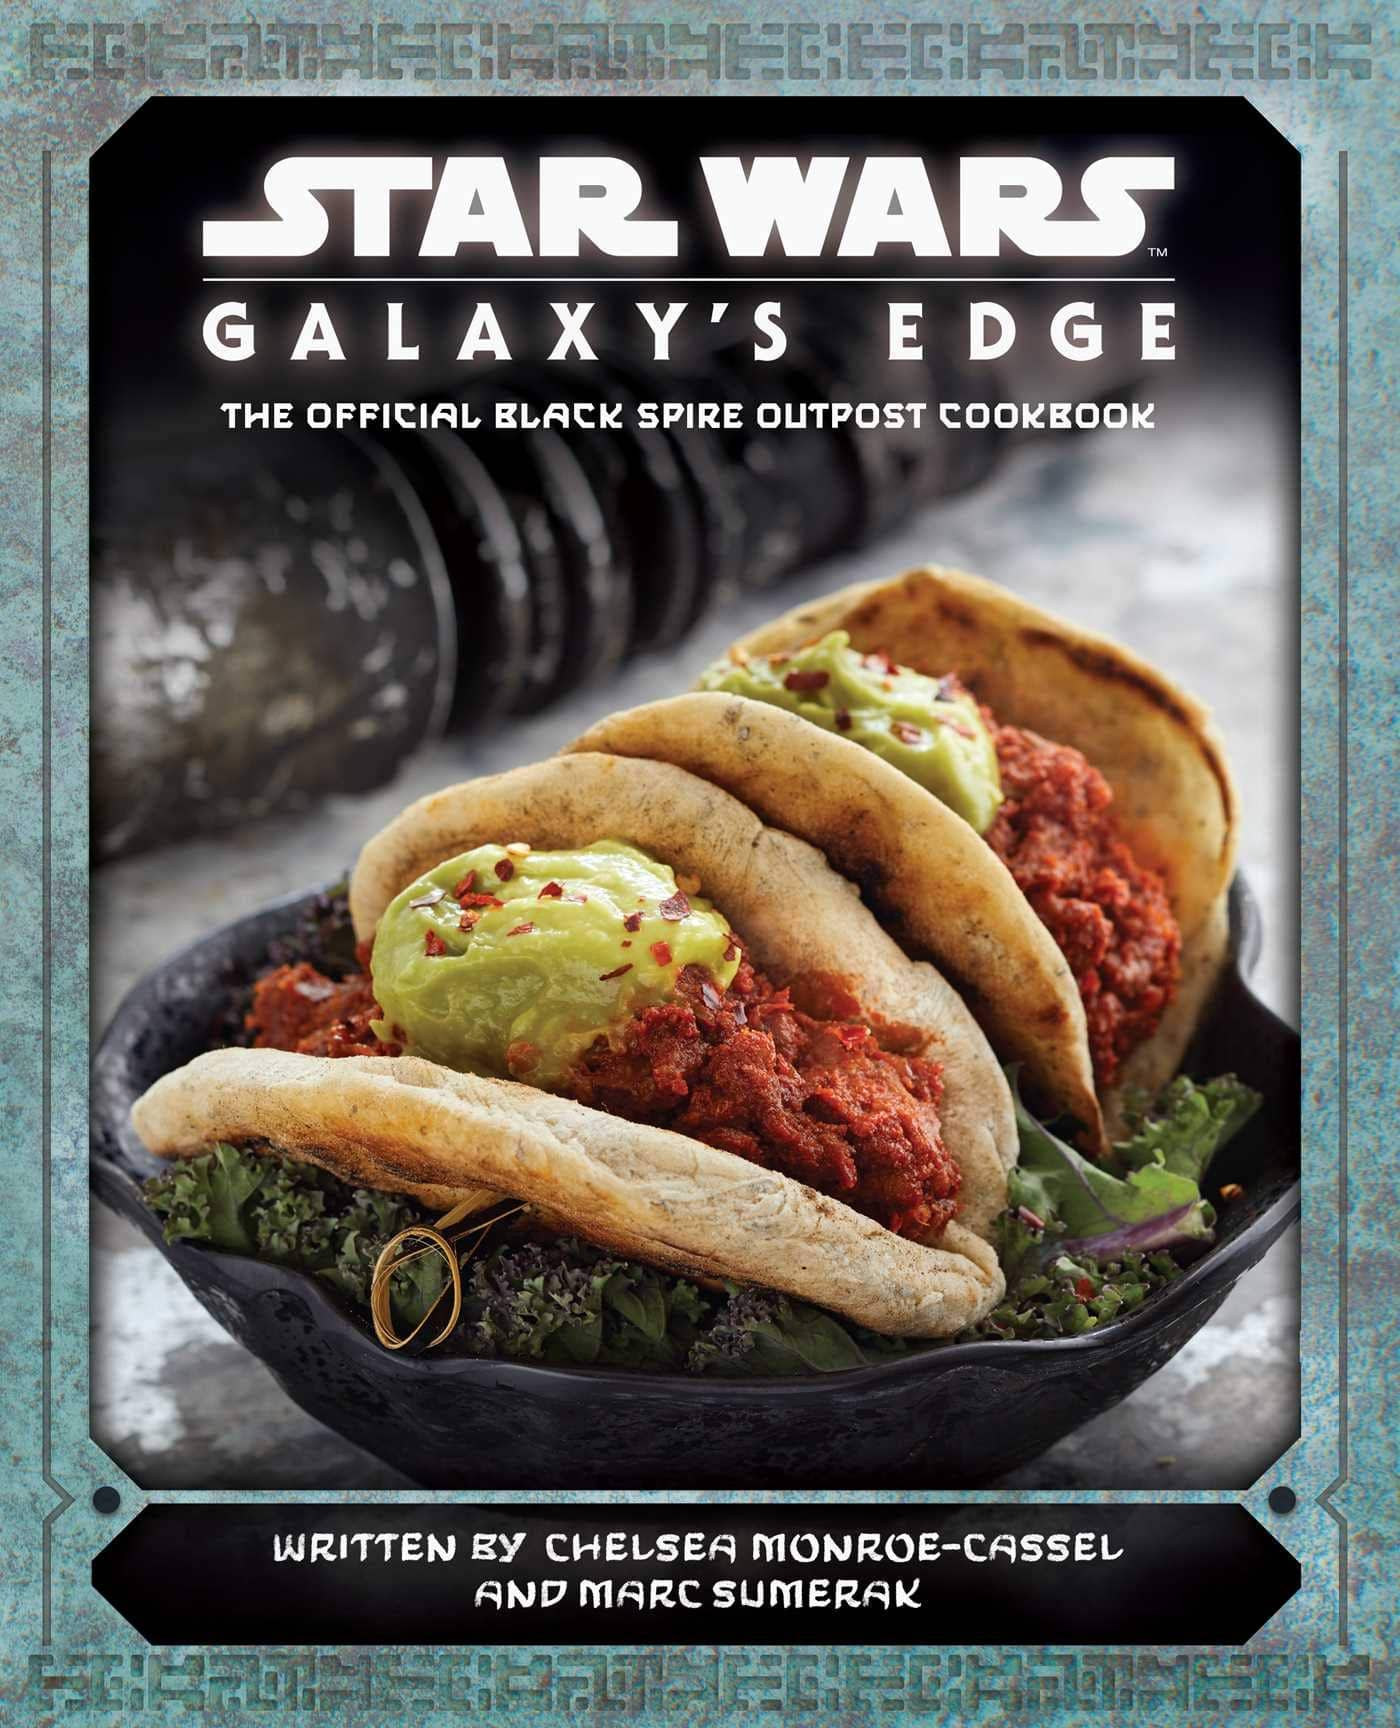 Star Wars: Galaxy's Edge: The Official Black Spire Outpost Cookbook (Hardcover) $14.70 + Free Shipping w/ Amazon Prime or Orders $25+